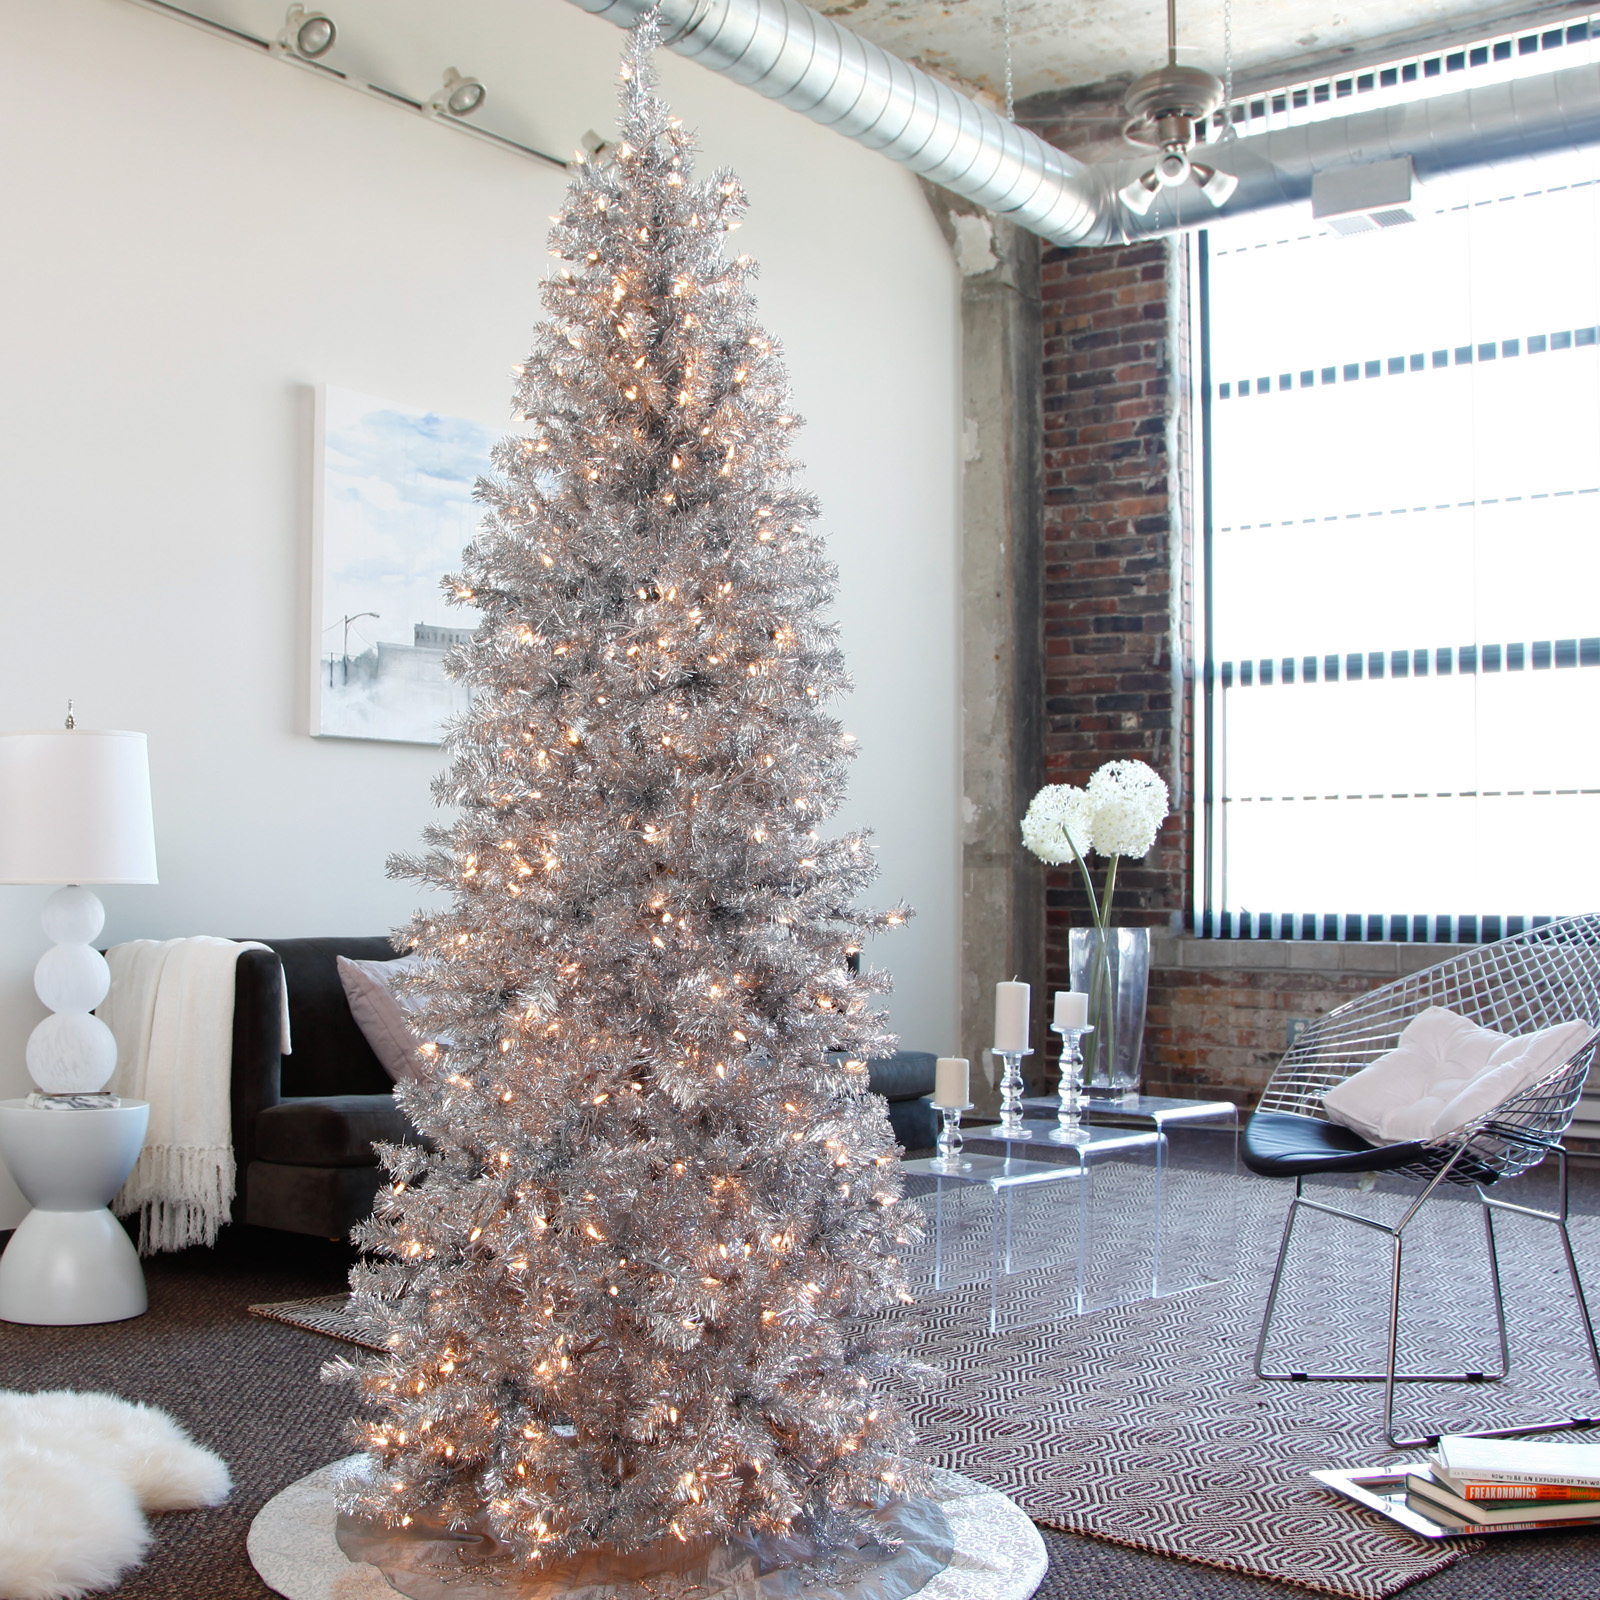 21 silver christmas tree dcor ideas digsdigs - Silver Christmas Tree Decorating Ideas